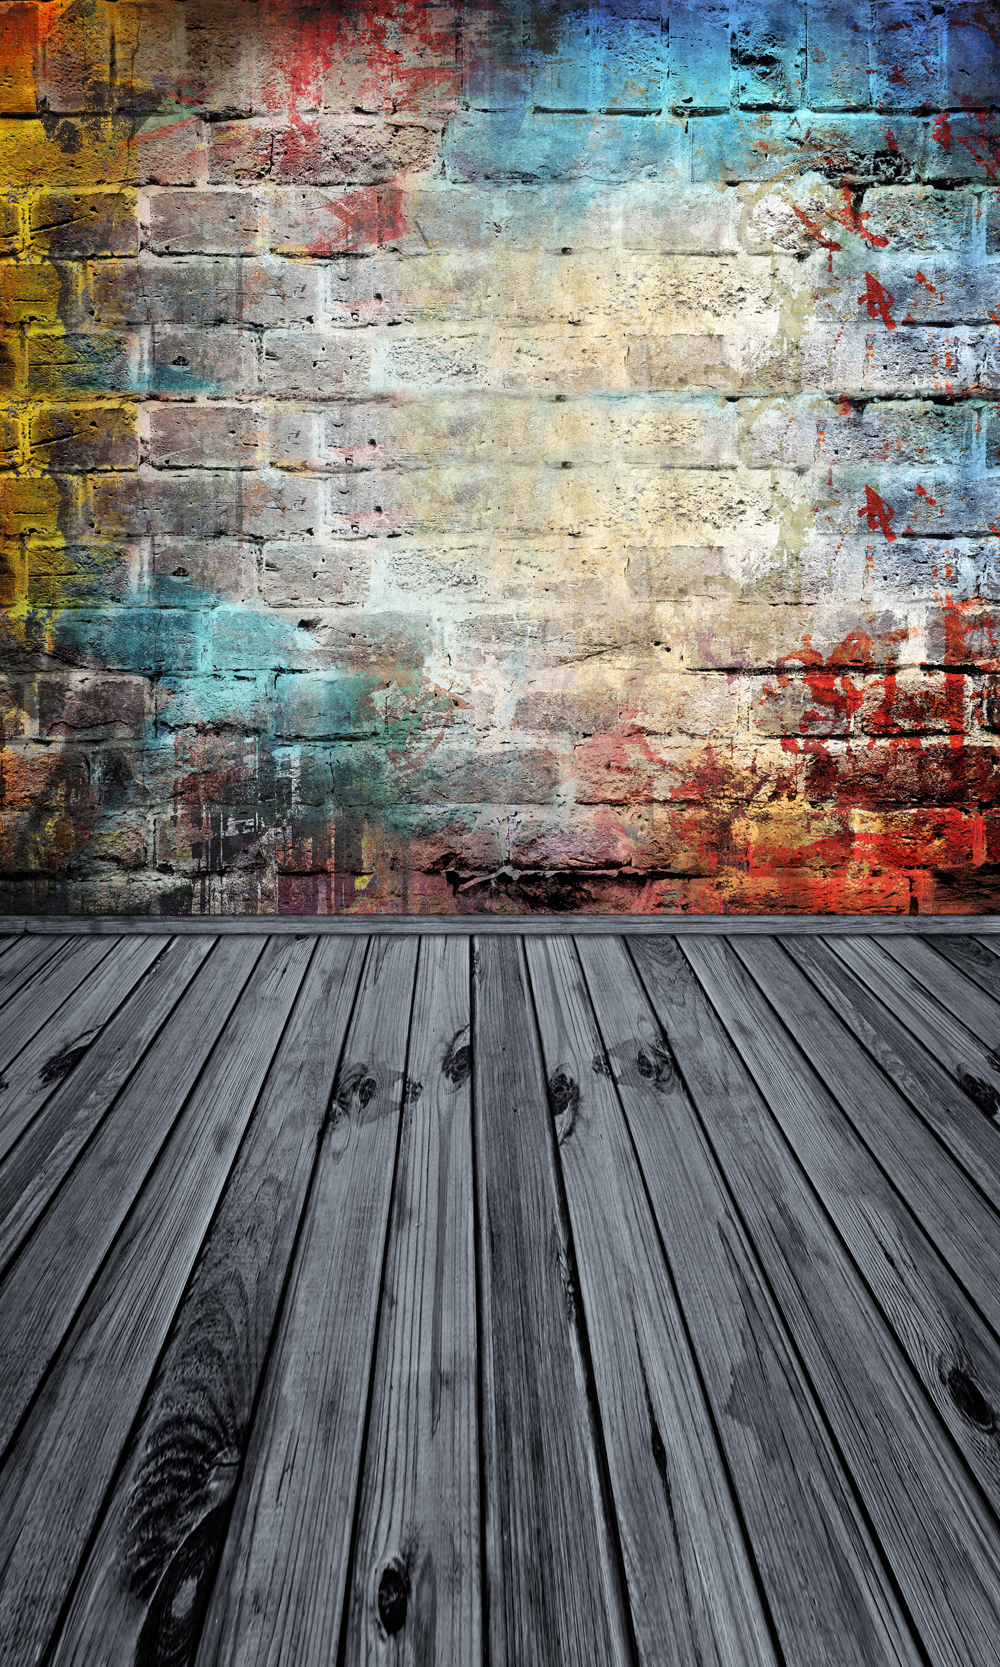 HUAYI 3x6m seamless brick wall wood floor Backdrop photography backdrops photo background vinyl backdrop brick paper XT-6400 ampeg svt 410he cover